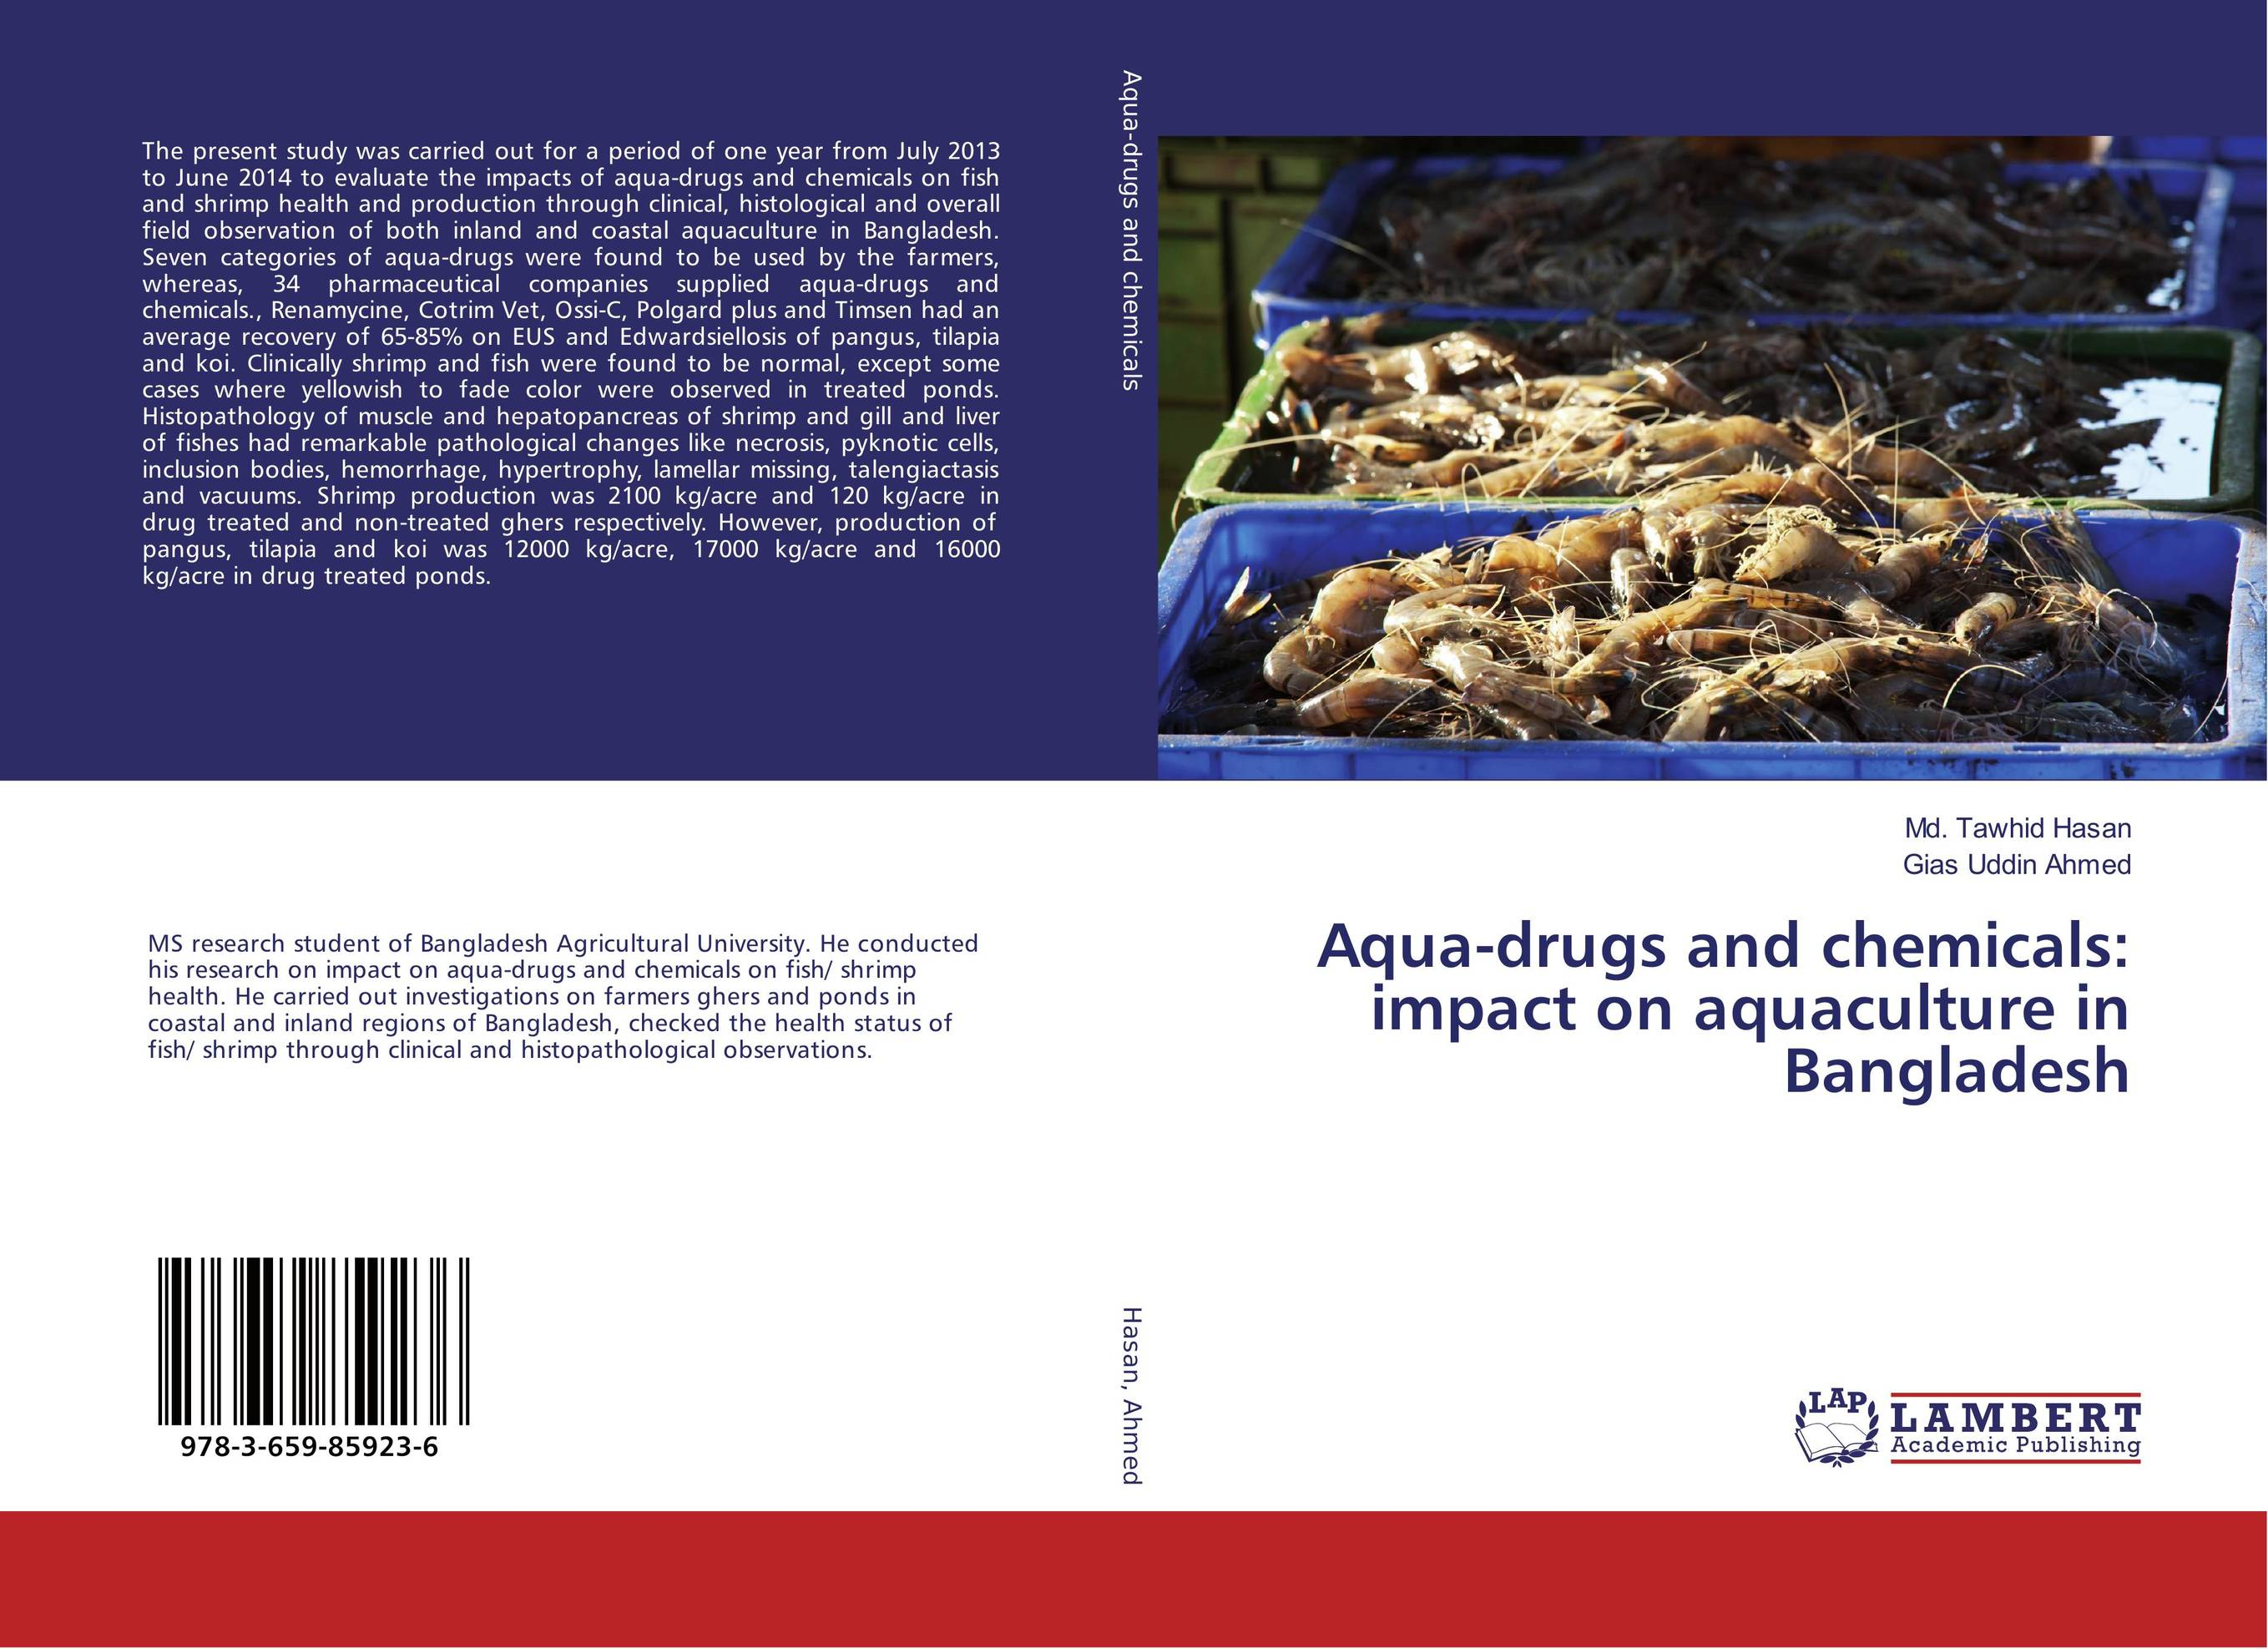 Aqua-drugs and chemicals: impact on aquaculture in Bangladesh